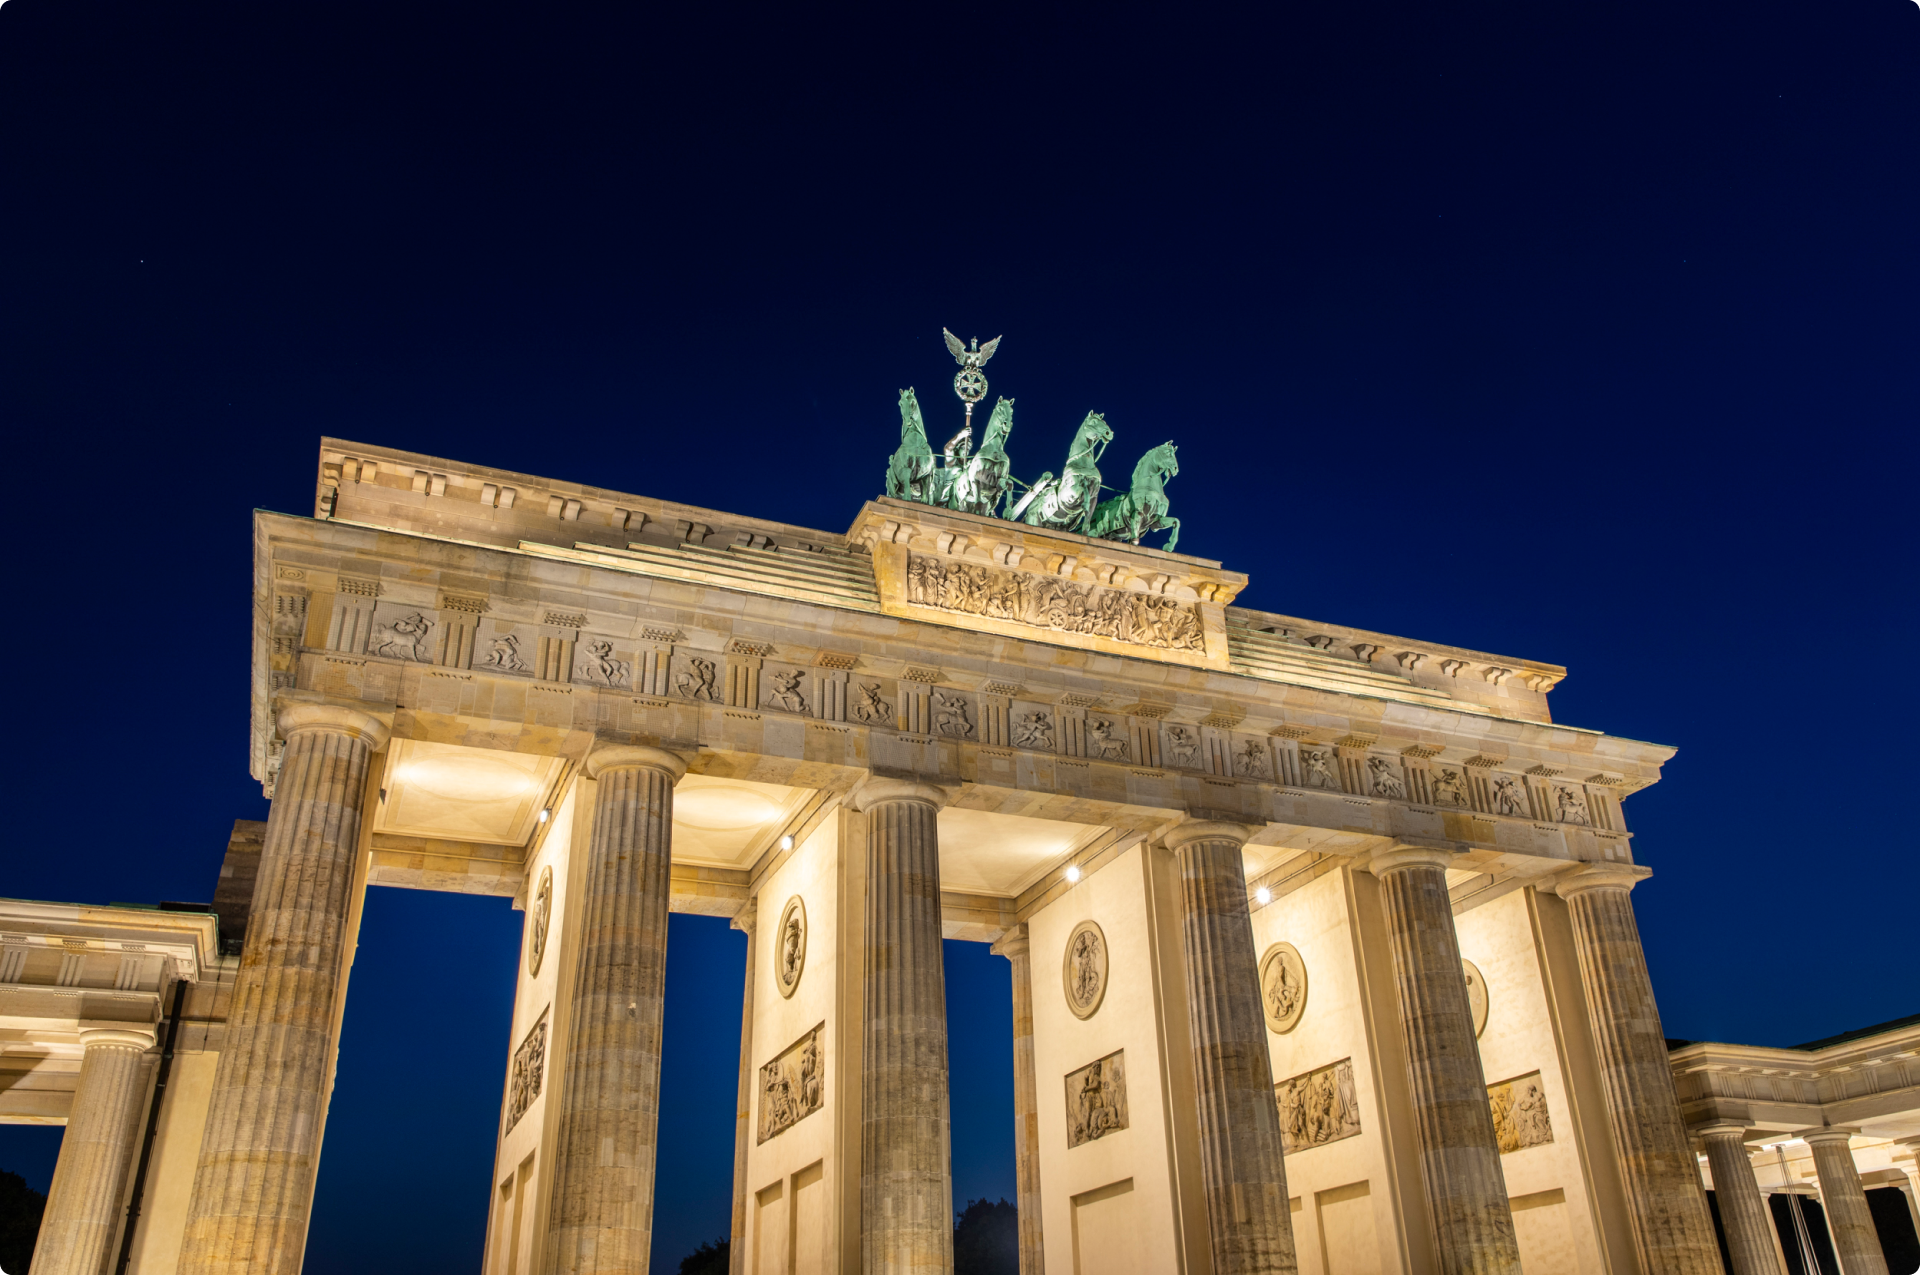 Brandenburg Gate, Berlin, photographed during the Blue Hour